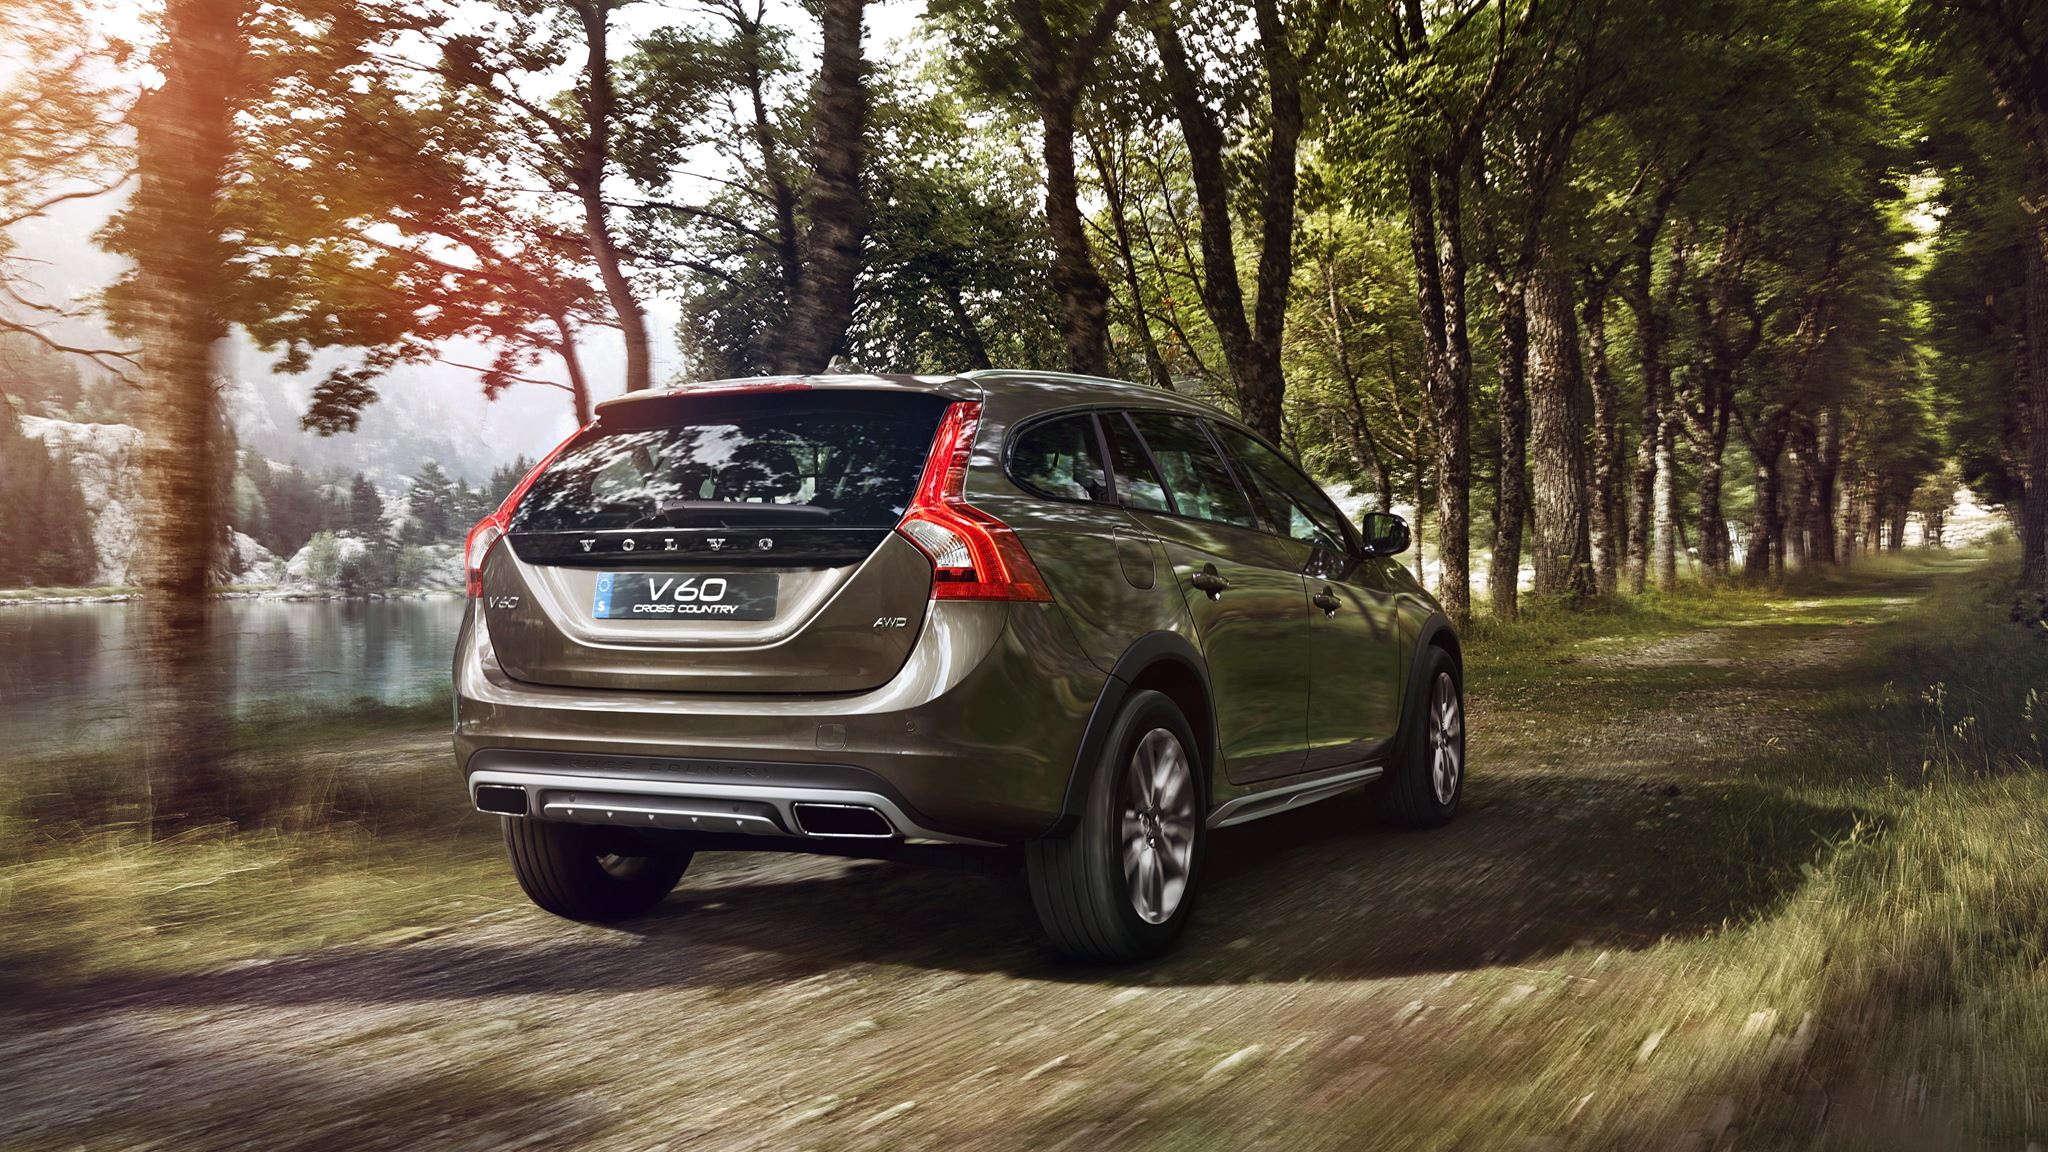 Nuevo Volvo V60 Cross Country D3 150 CV Premium Edition 3